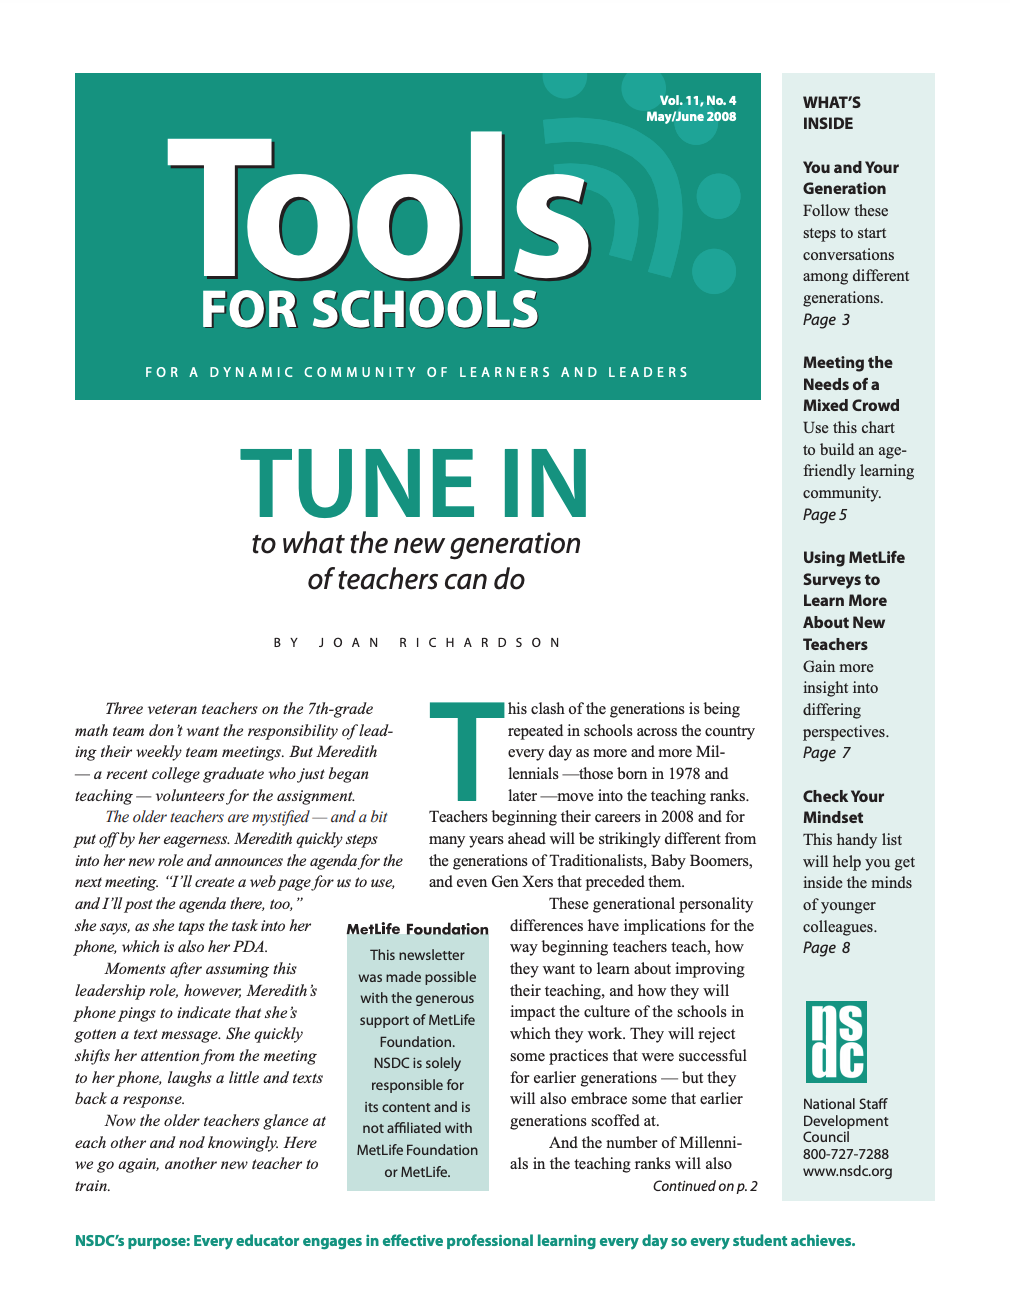 tools-for-schools-may-june-2008-vol-11-no-4